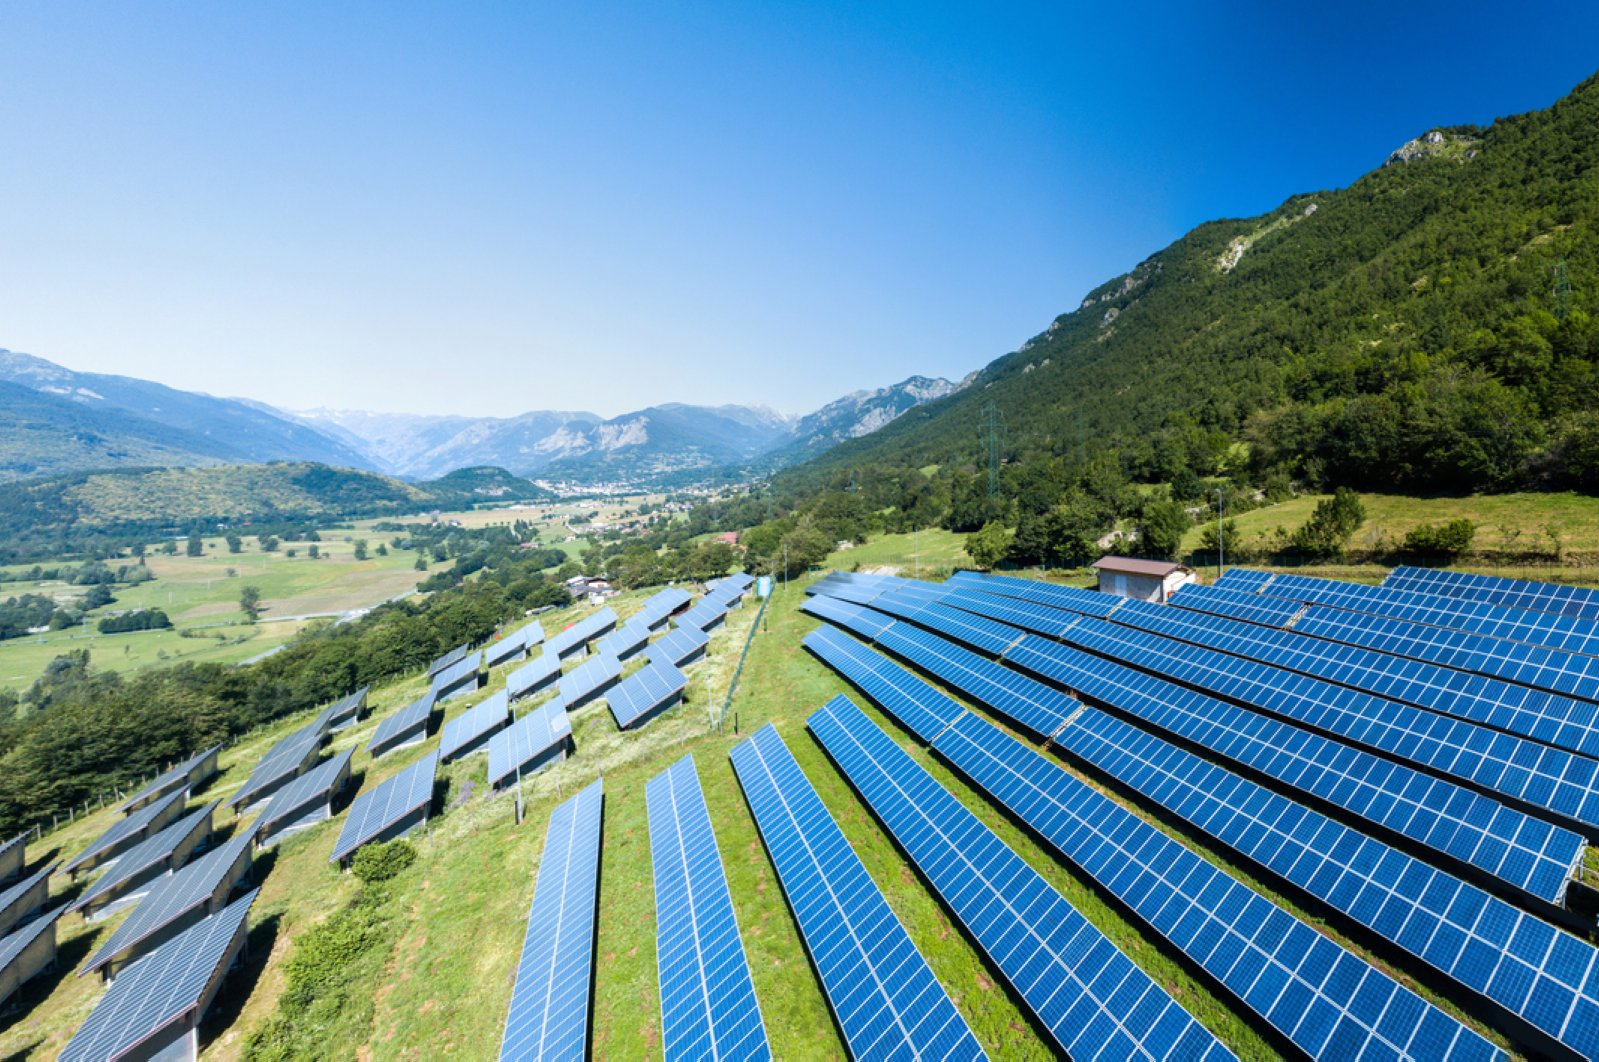 Aerial view of a solar power station in Italy installed in the Alpine mountains. (iStock Photo)